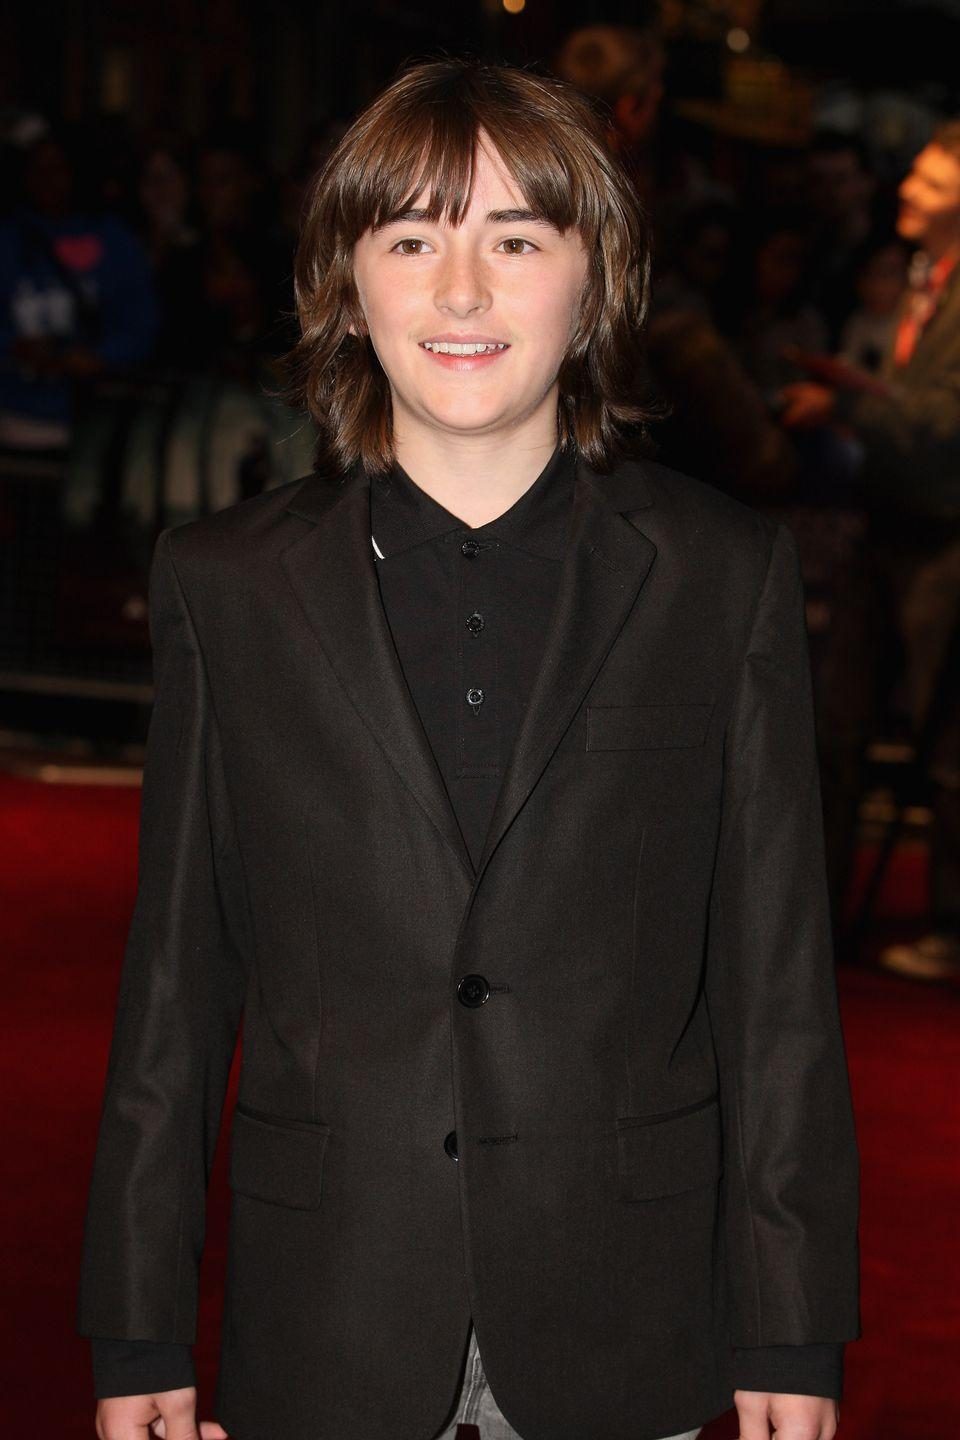 <p>Isaac Hempstead-Wright, who plays Bran Stark, in 2011.</p>